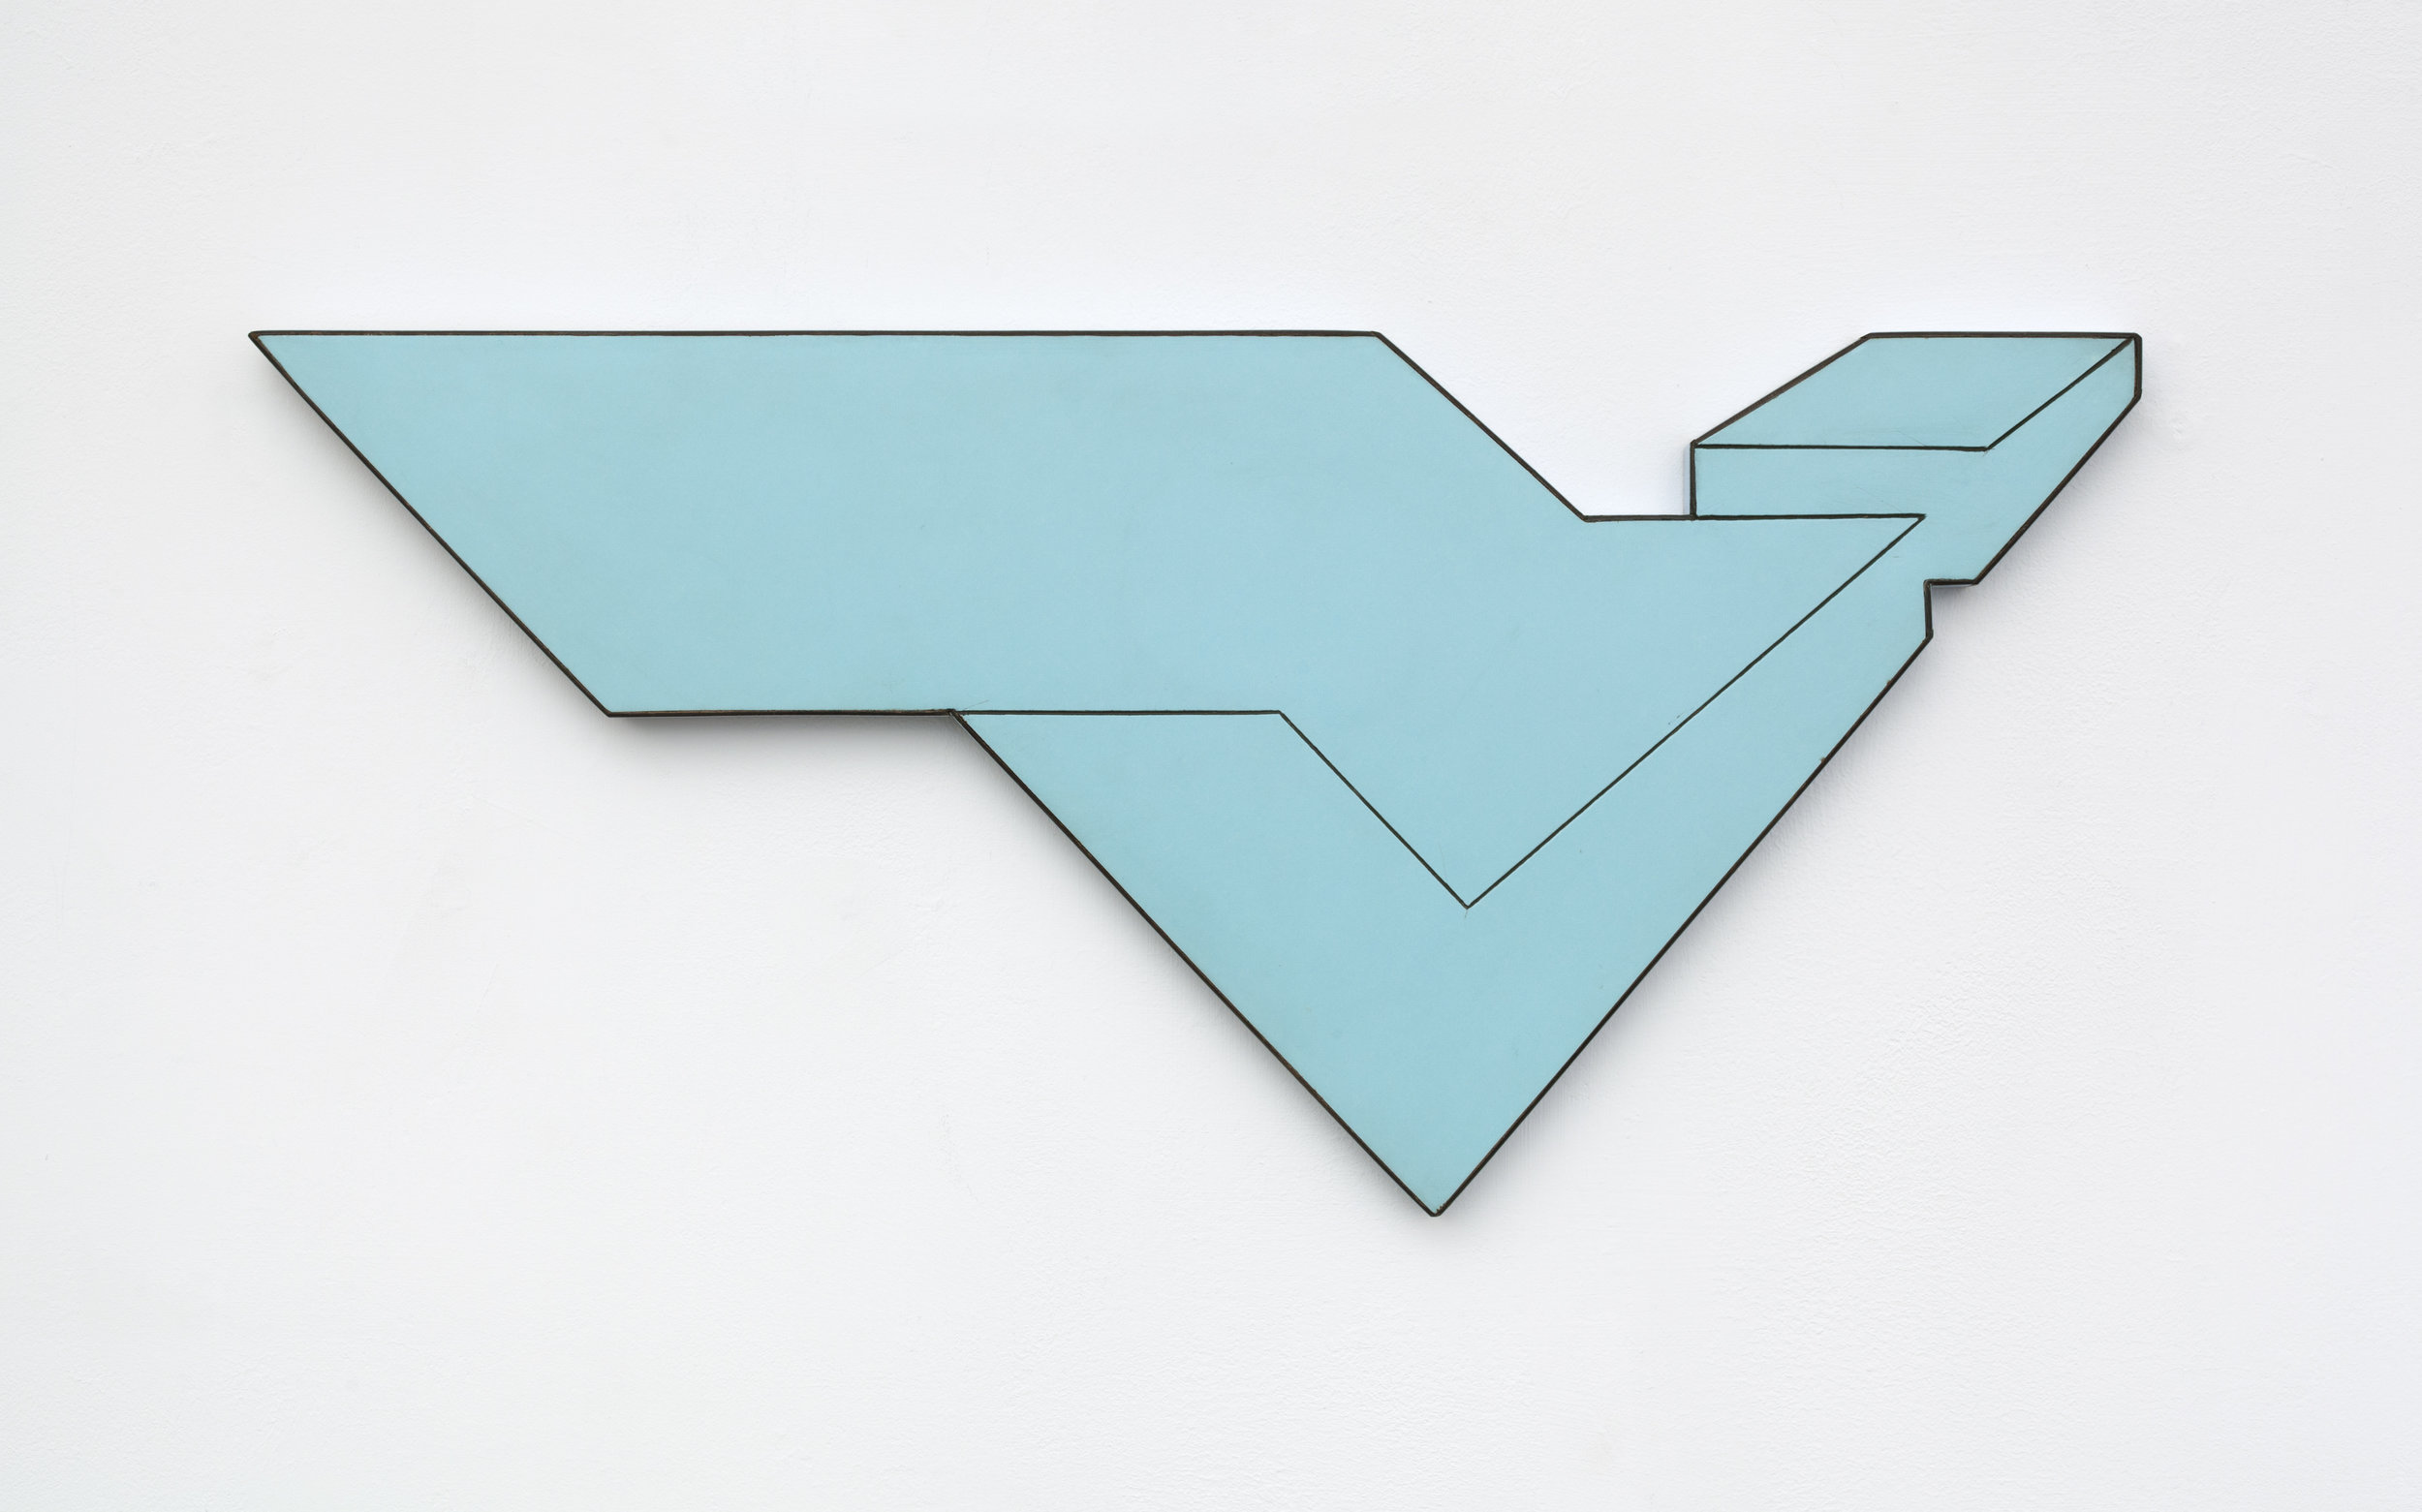 Douglas Huebler Untitled Wall Piece, May 1967 Formica on particleboard 20 1/2 x 9 5/8 x 3/4 in. (52.1 x 24.4 x 1.9 cm)© 2017 Estate of Douglas Huebler / Artists Rights Society (ARS), New York. Courtesy Paula Cooper Gallery, New York    Photo: Steven Probert